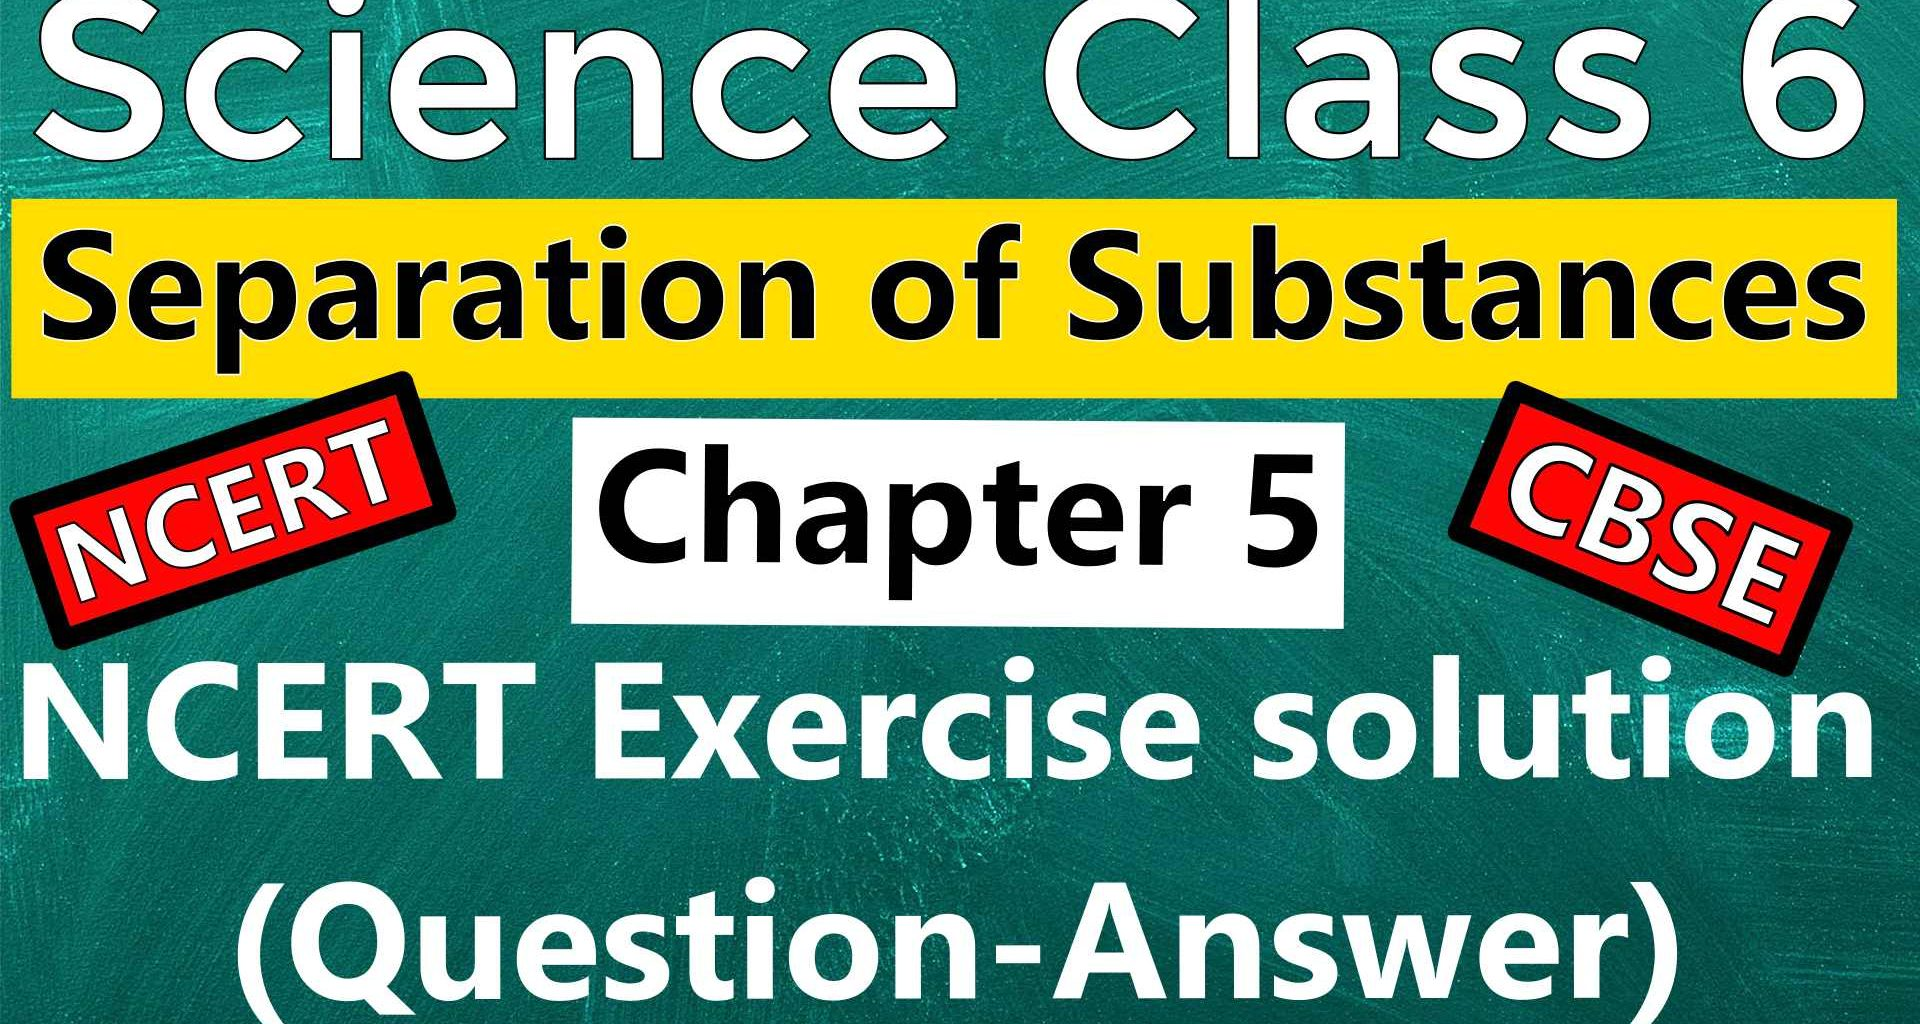 Science class 6 - Chapter 5 – Separation of Substances – NCERT Exercise Solutions (Question-Answer)